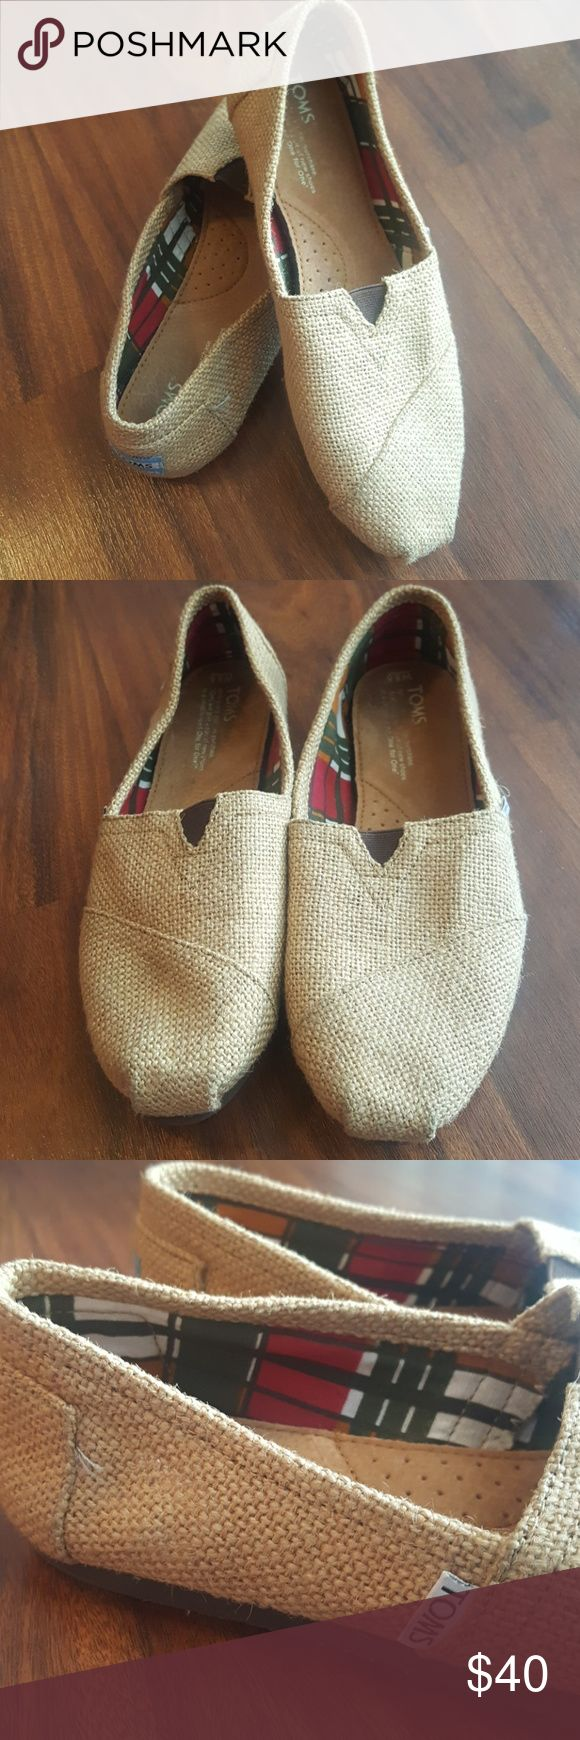 Toms Natural Burlap Women's Classics Slip-On Classic Burlap Toms slip-on. Like new. Worn maybe twice. Little to no wear on the soles. Women's size 8.5. Toms Shoes Flats & Loafers